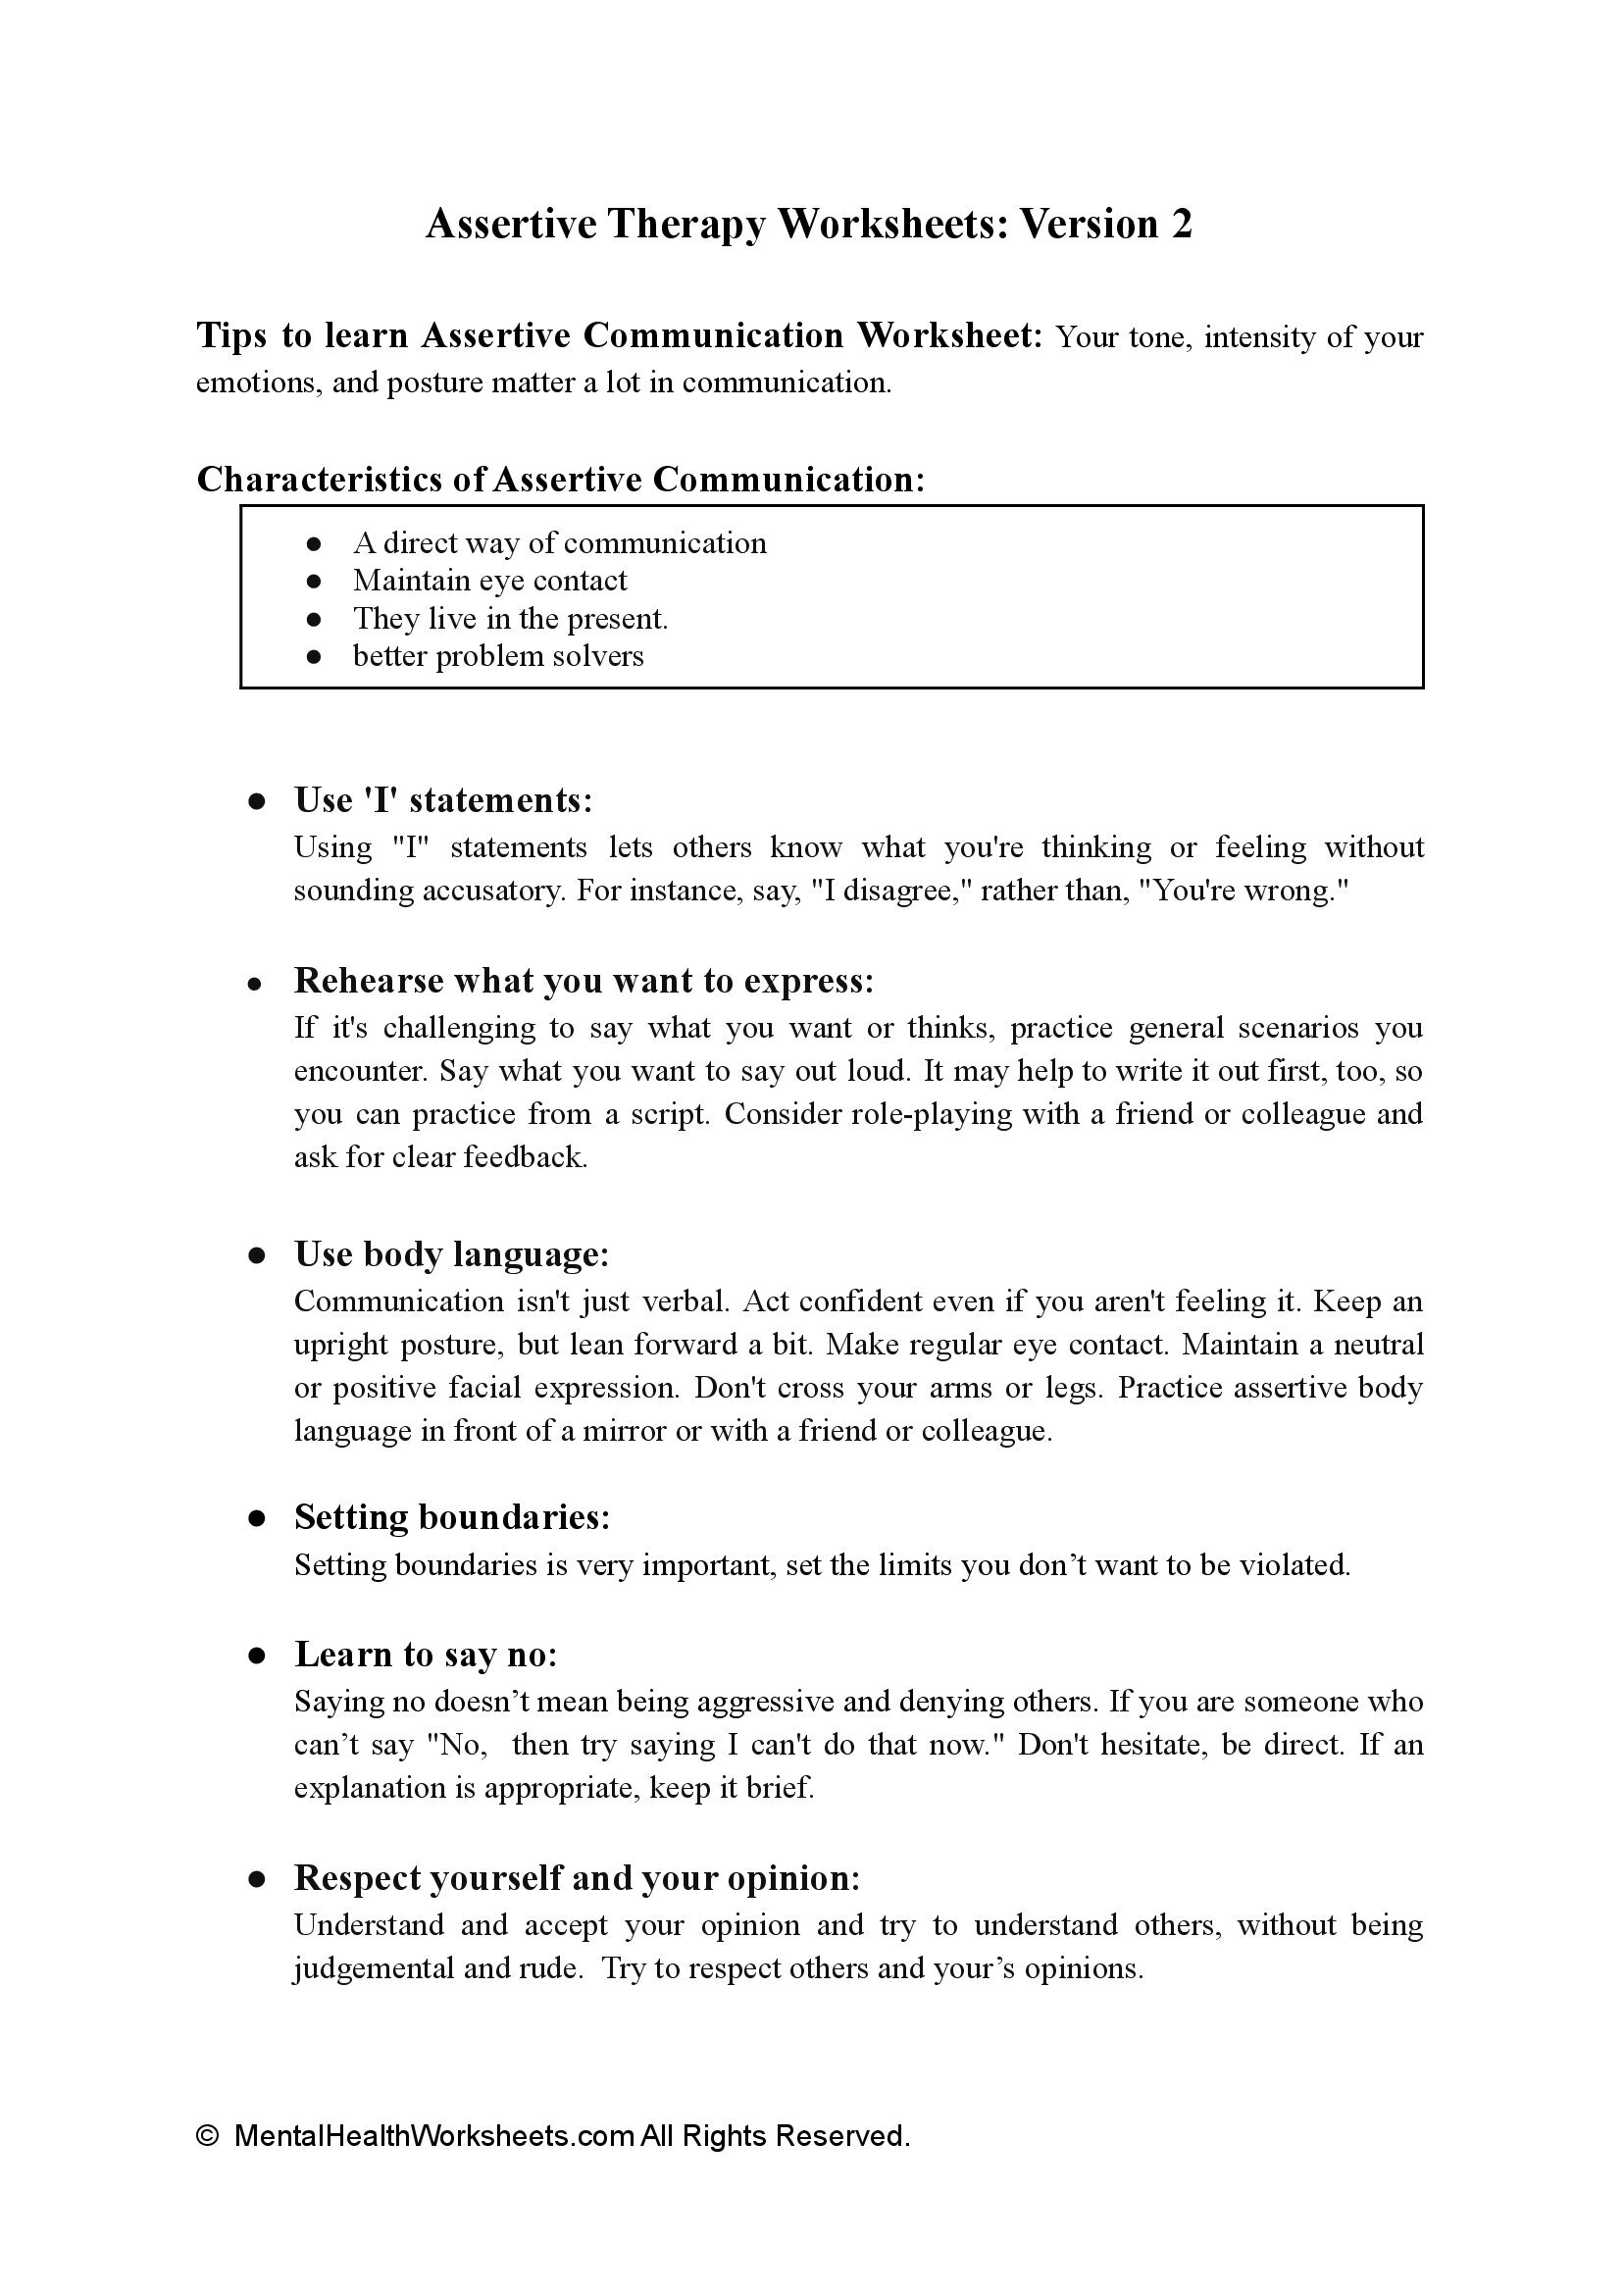 Assertive Therapy Worksheets: Version 2